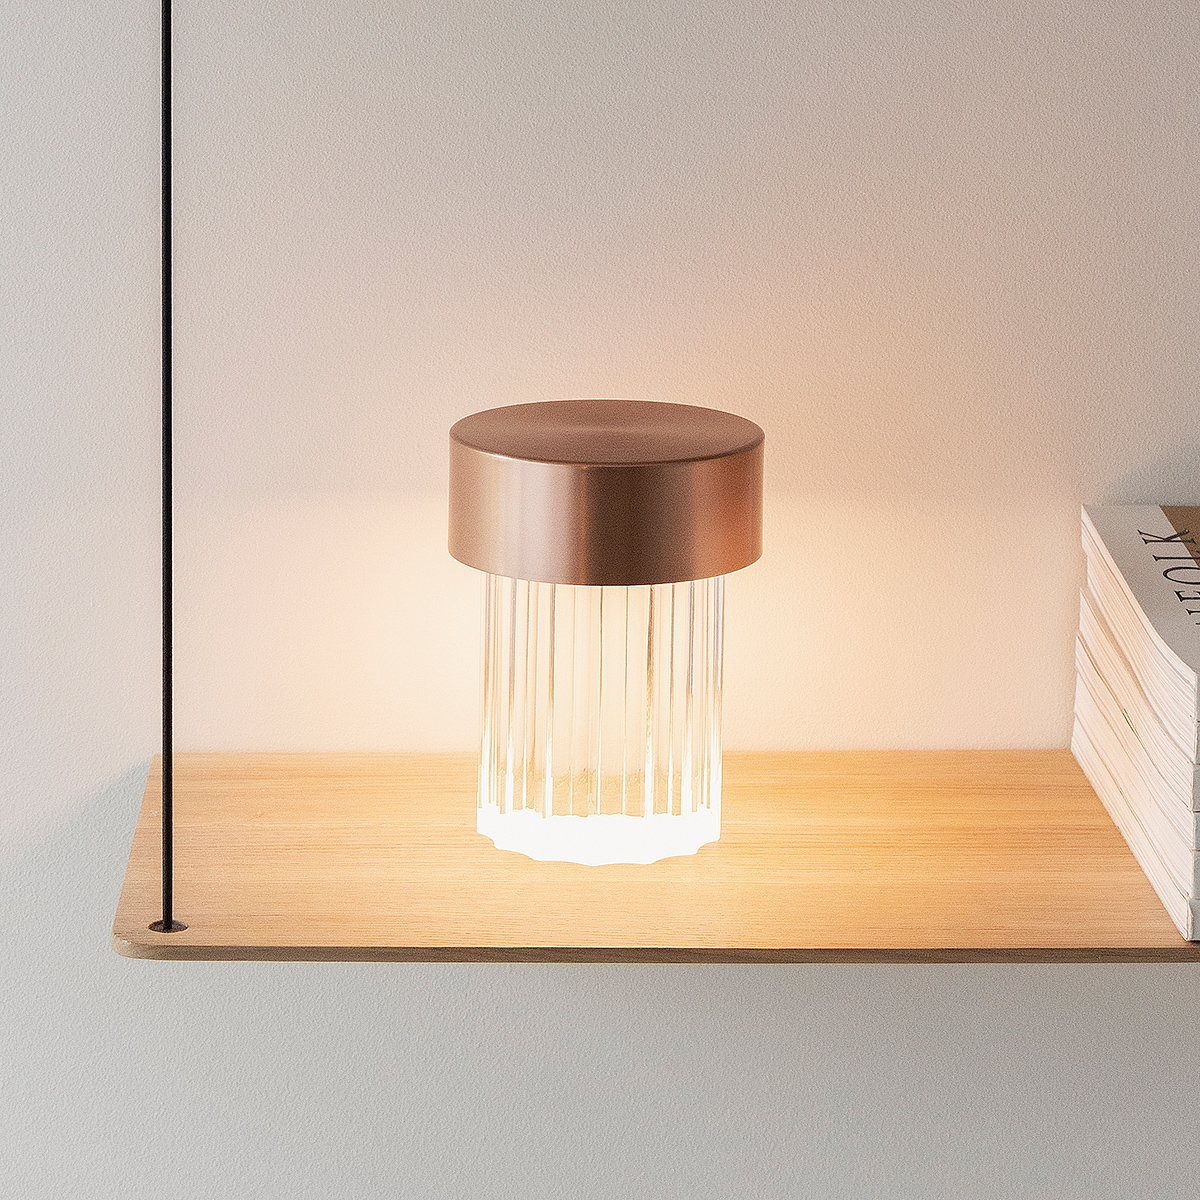 Flos Launches Portable 'Last Order' Lamp